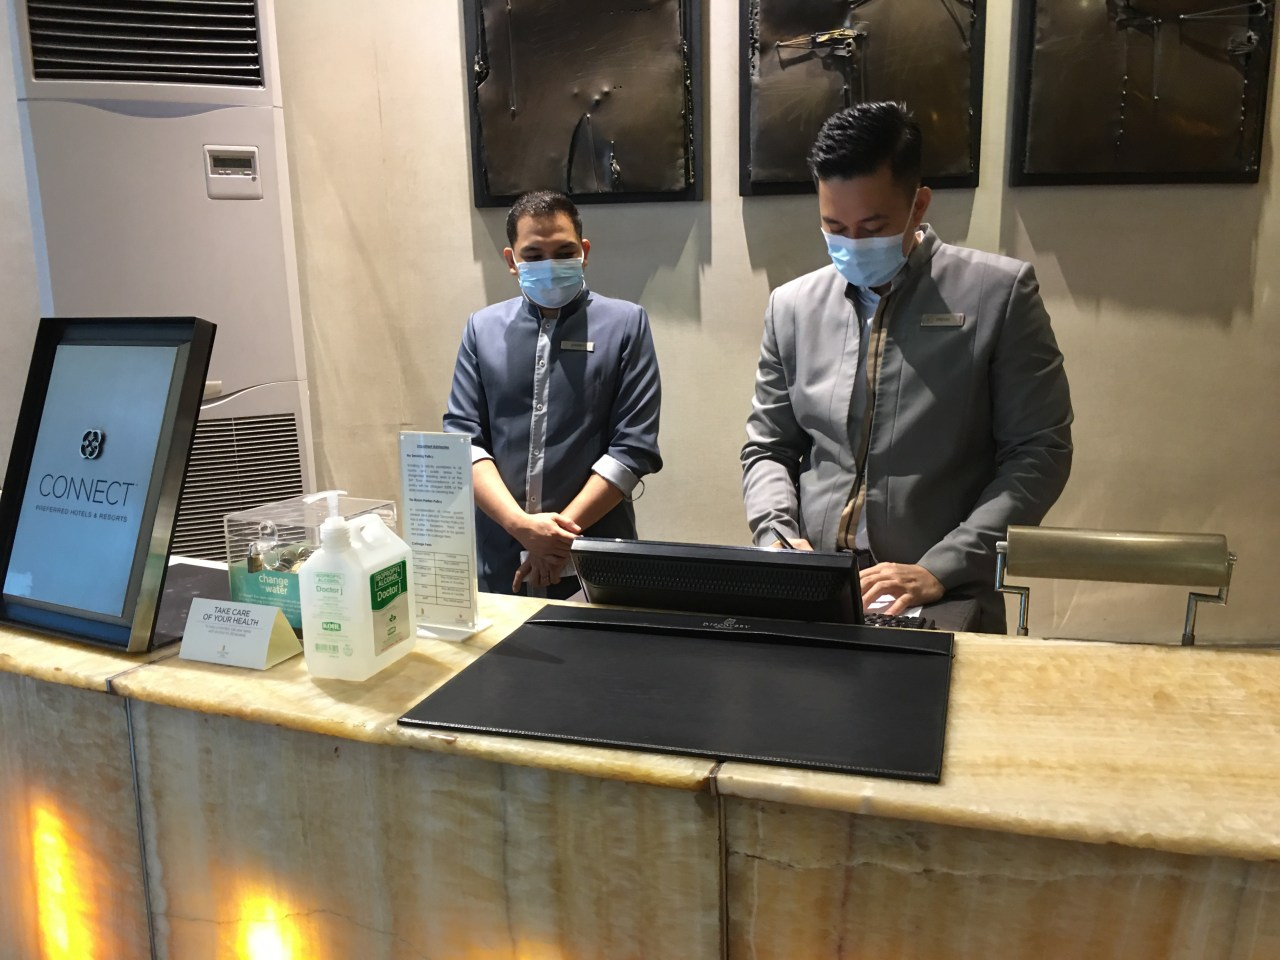 The front desk officers while we were waiting for our luggages